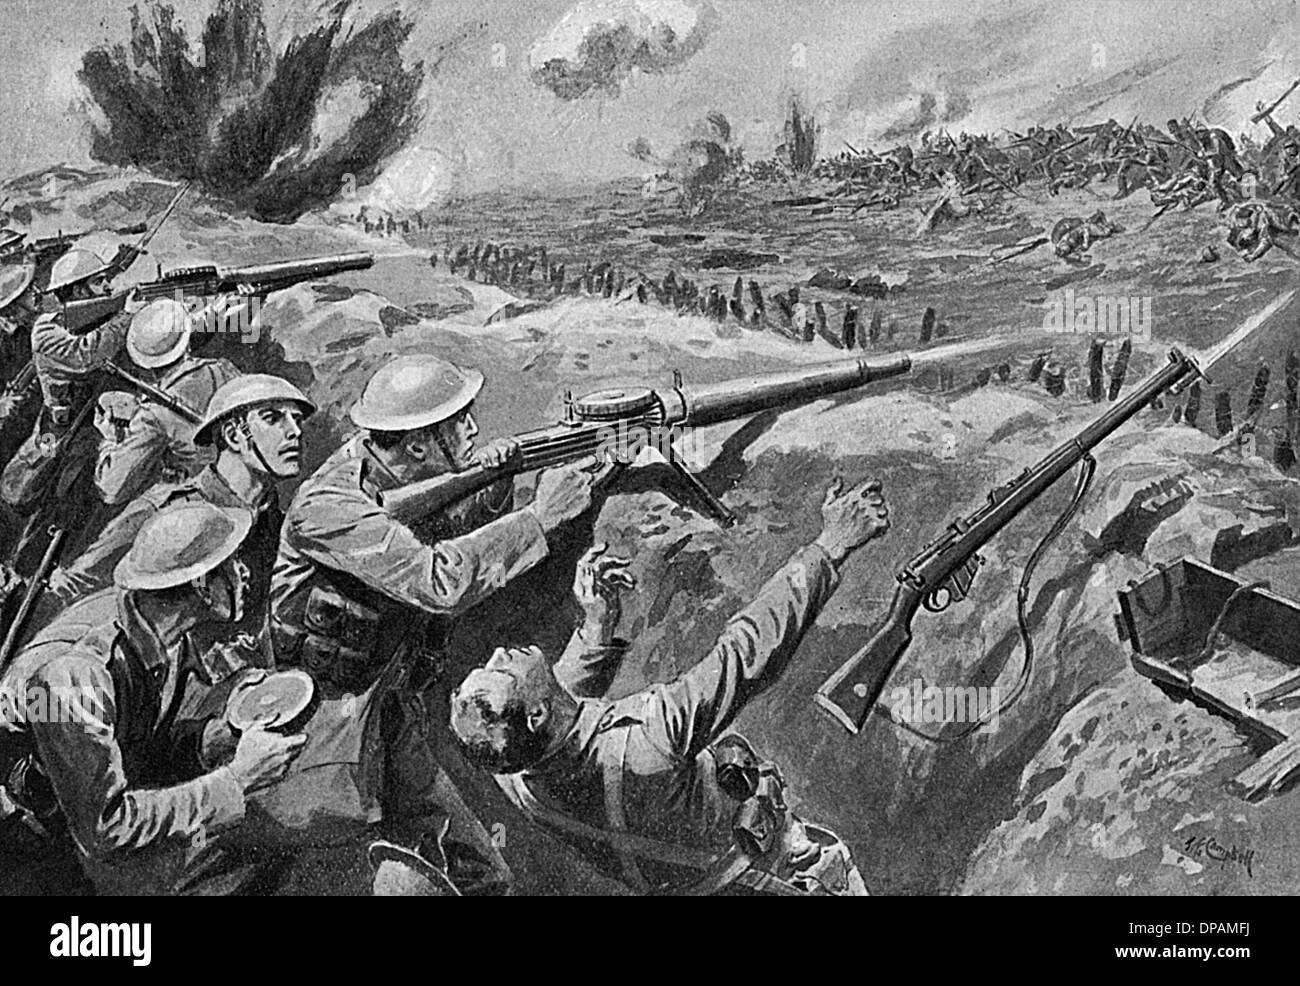 LEWIS GUN TRENCHES WW1 - Stock Image